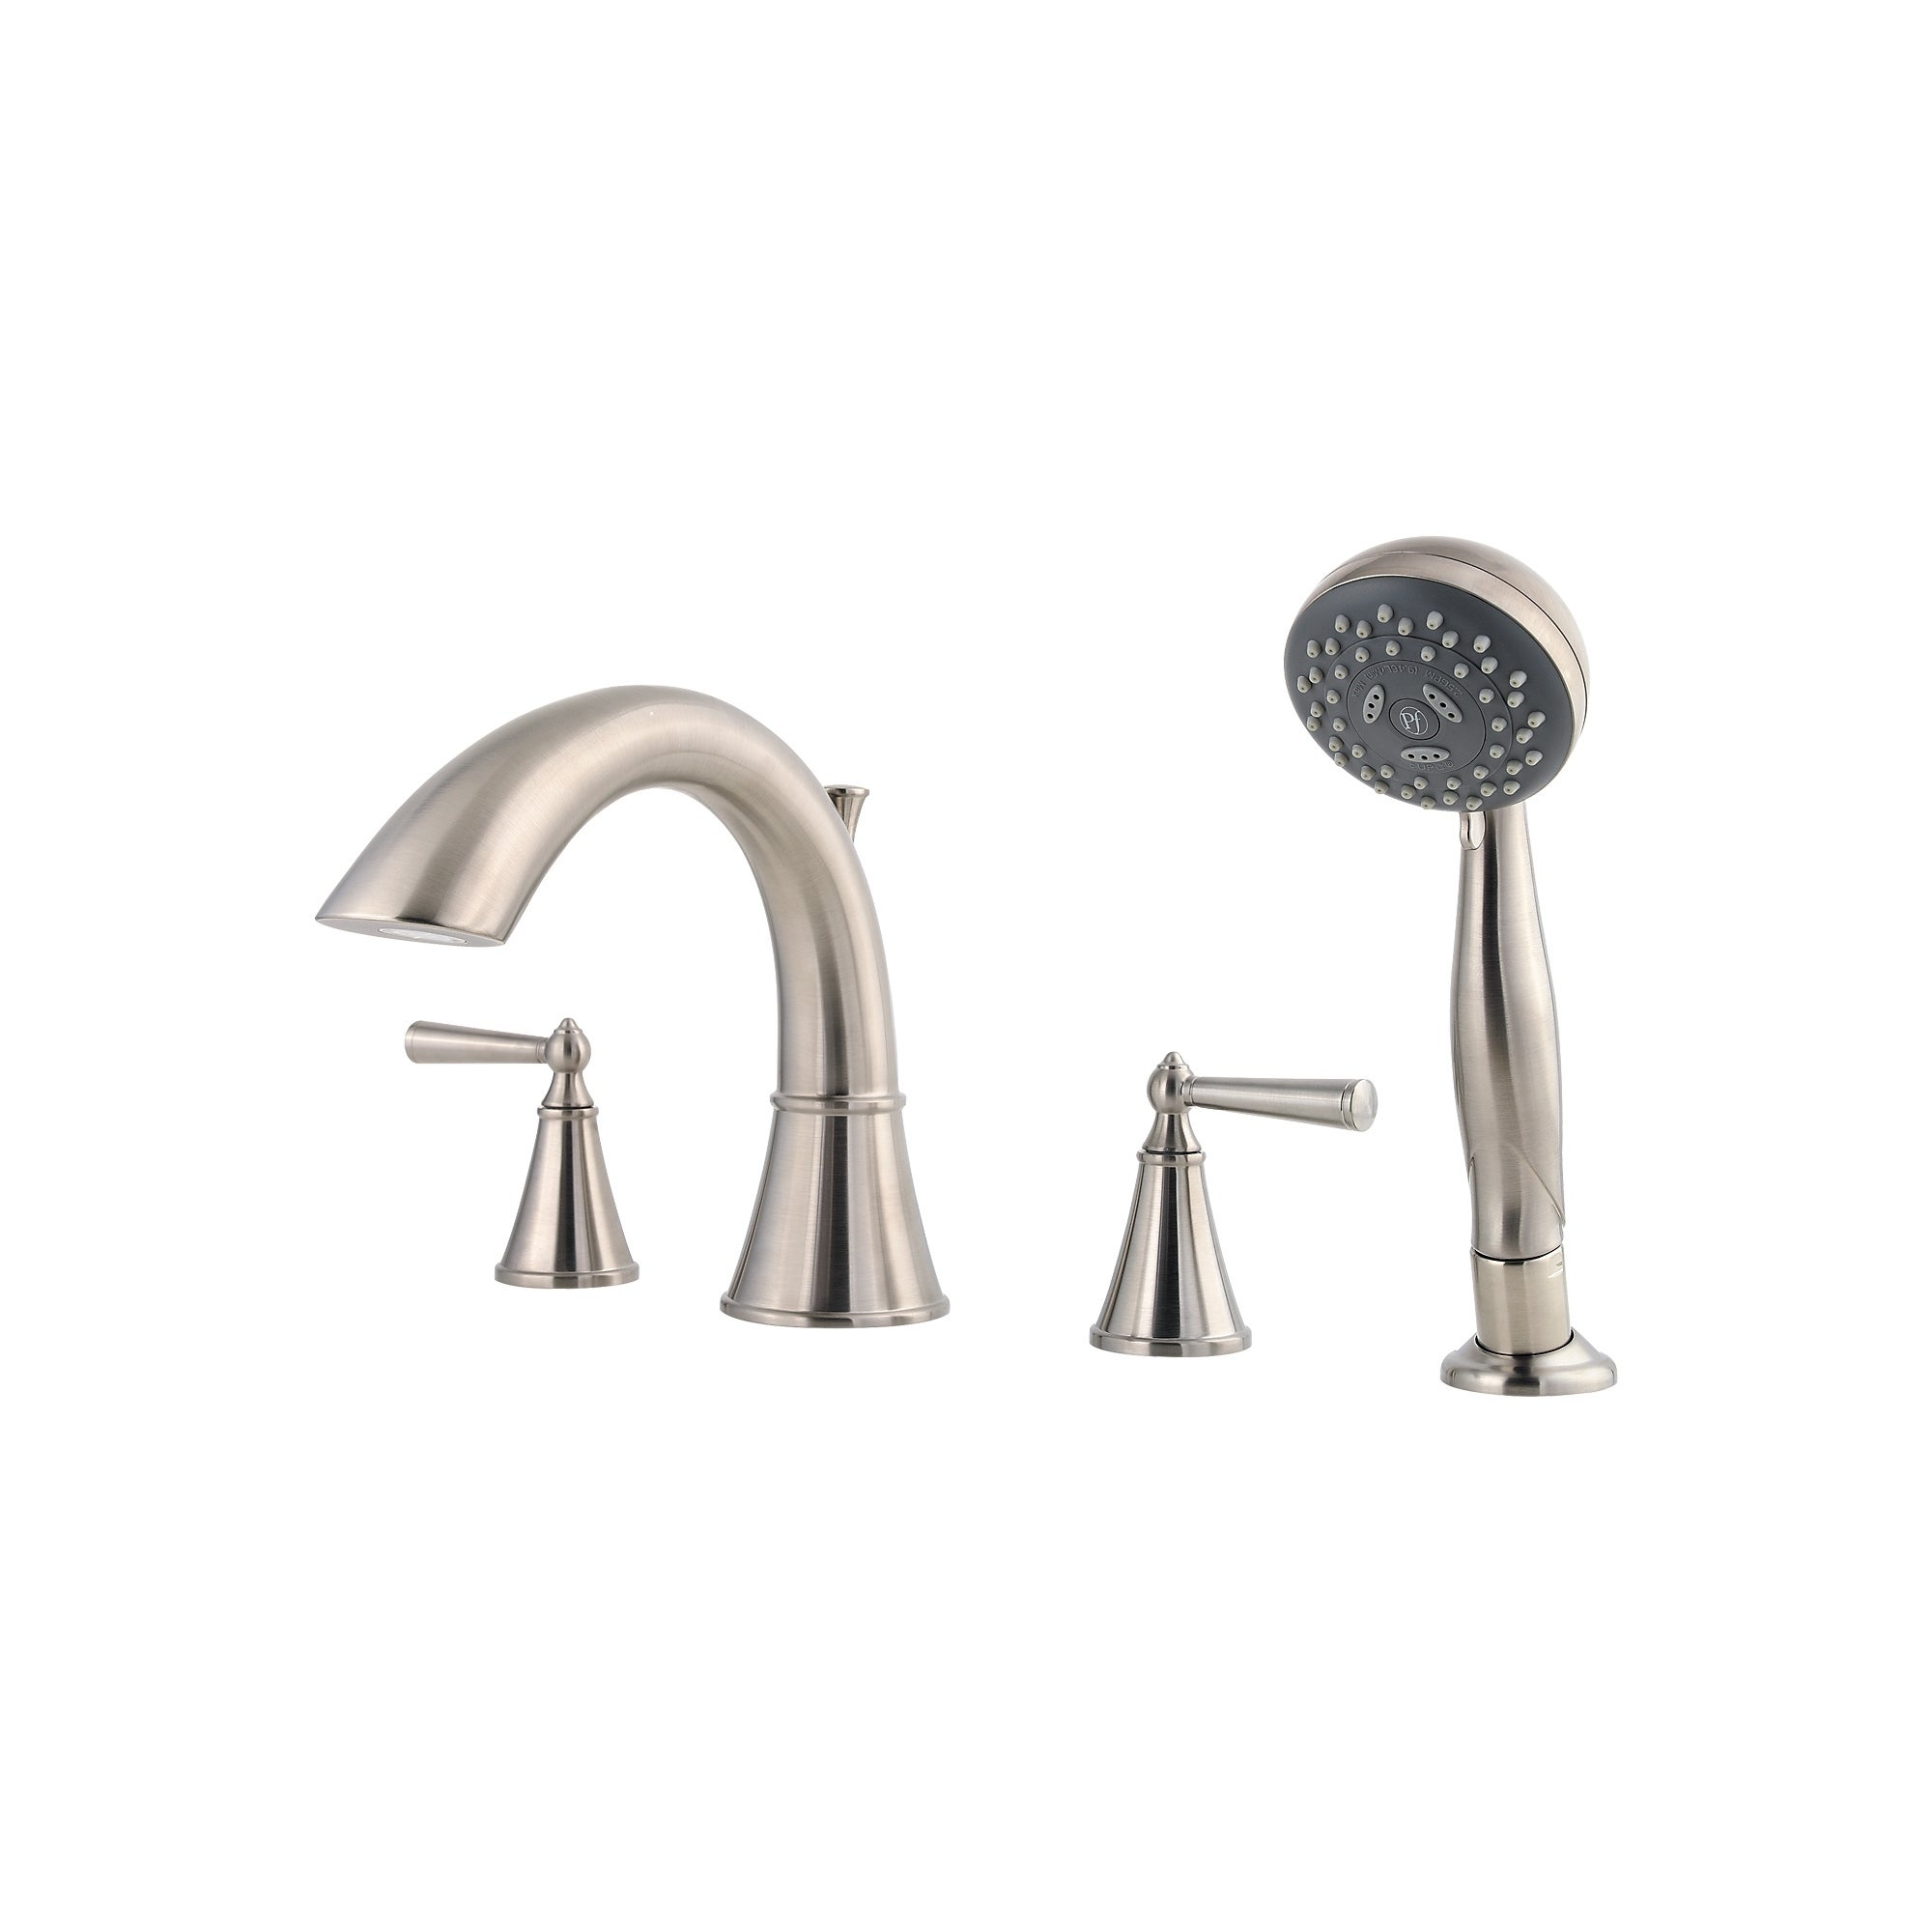 Shop Pfister Saxton Lg6 4glk Brushed Nickel 2 Handle Complete Roman Tub Trim With Handheld Shower Overstock 27615815